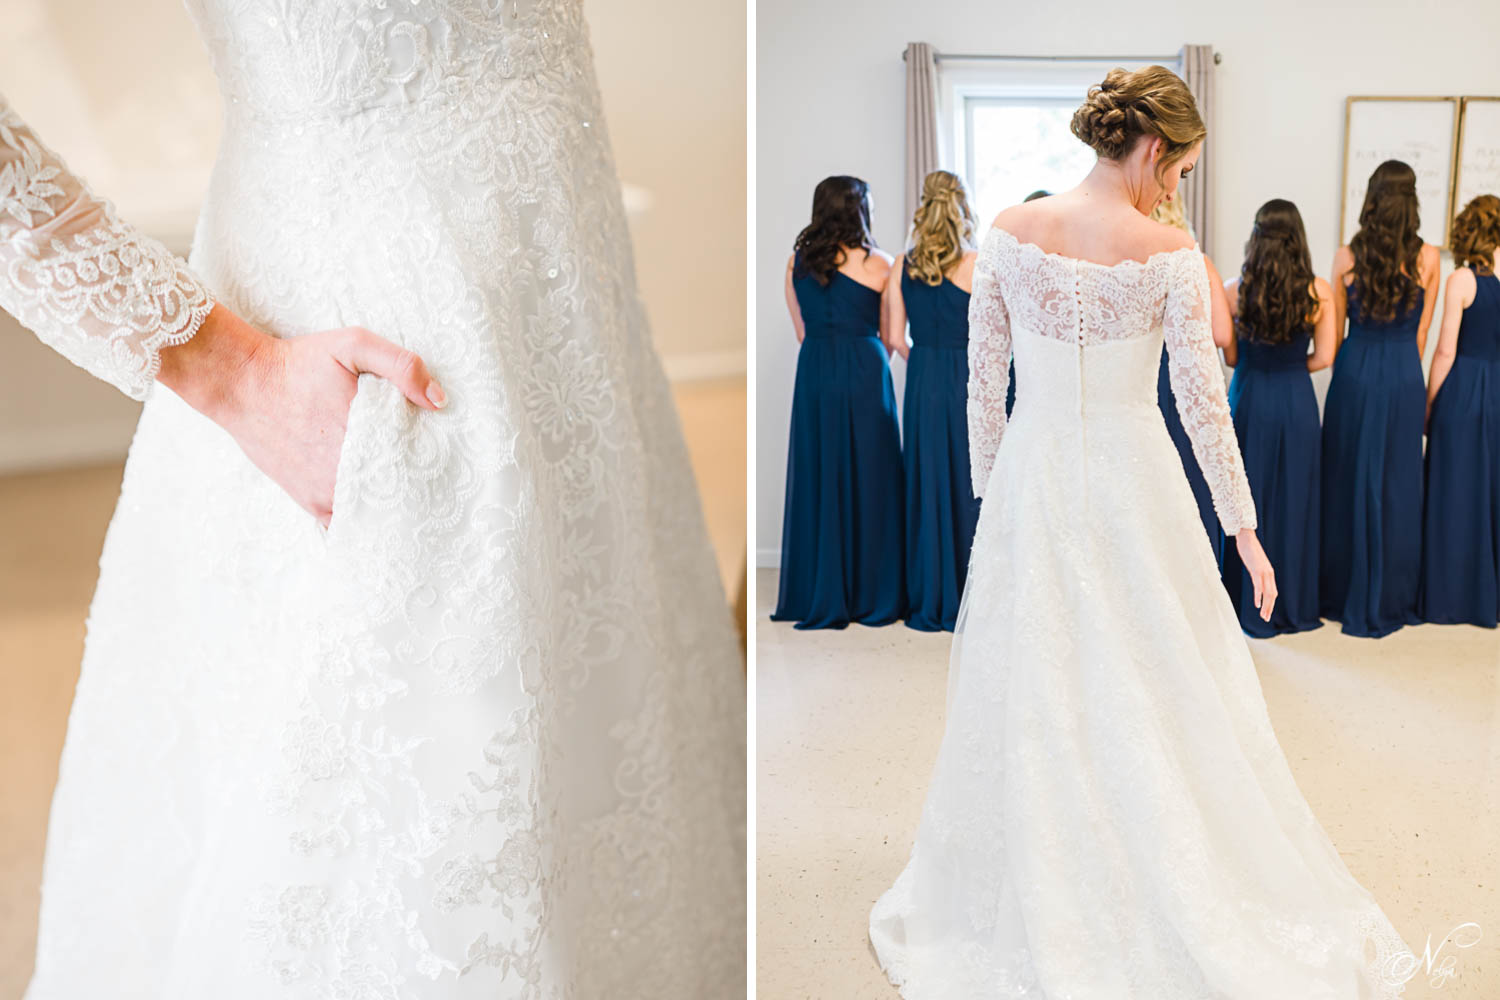 Oleg Cassini wedding dress with pockets. And back of Off-The-Shoulder Lace A-Line Wedding Dress with bridesmaids in the background